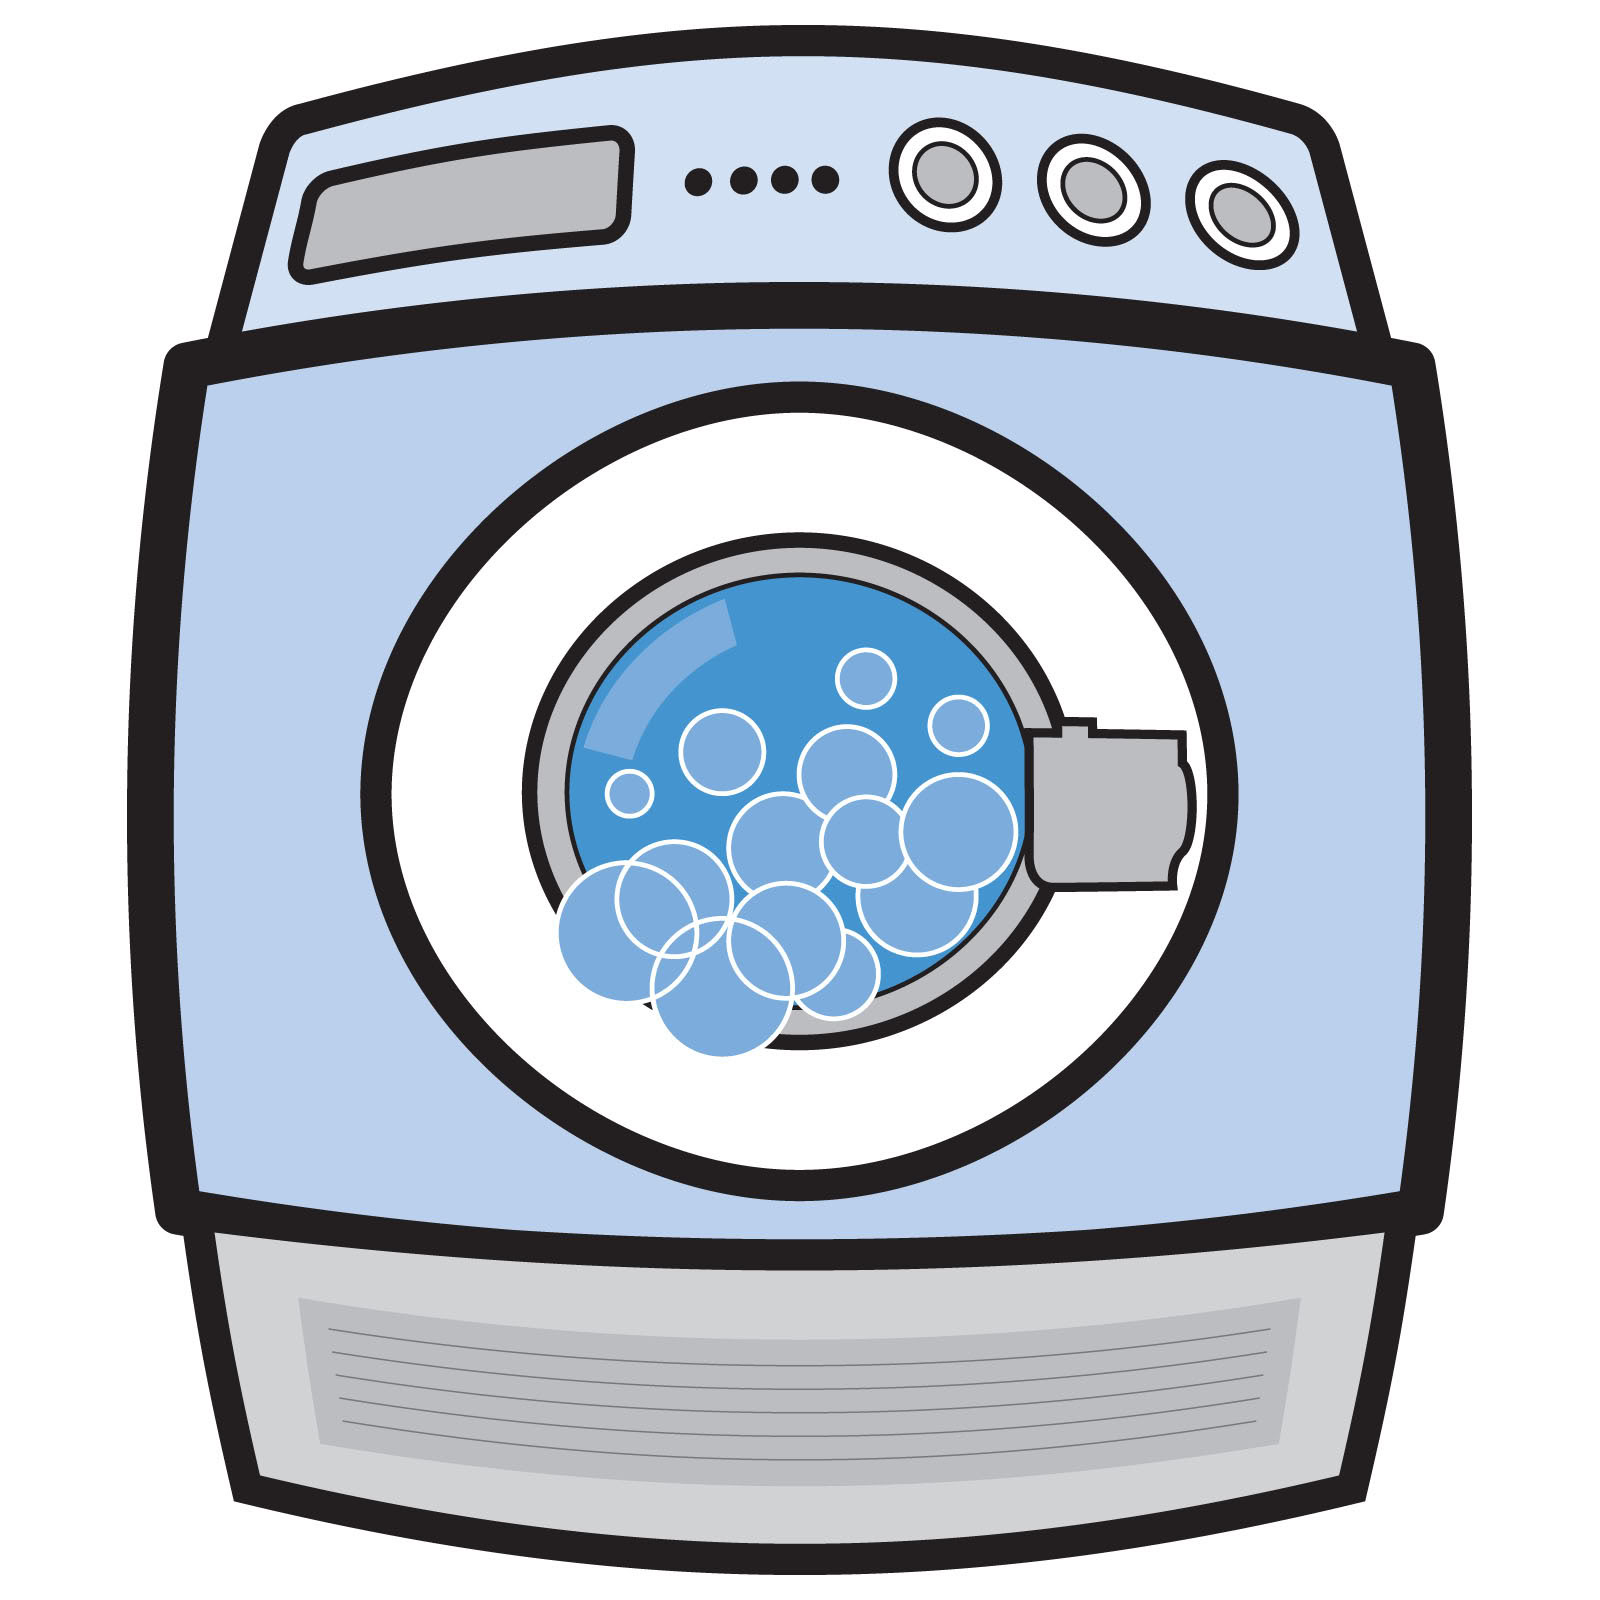 1950s vintage washing machine clipart clipart images gallery.